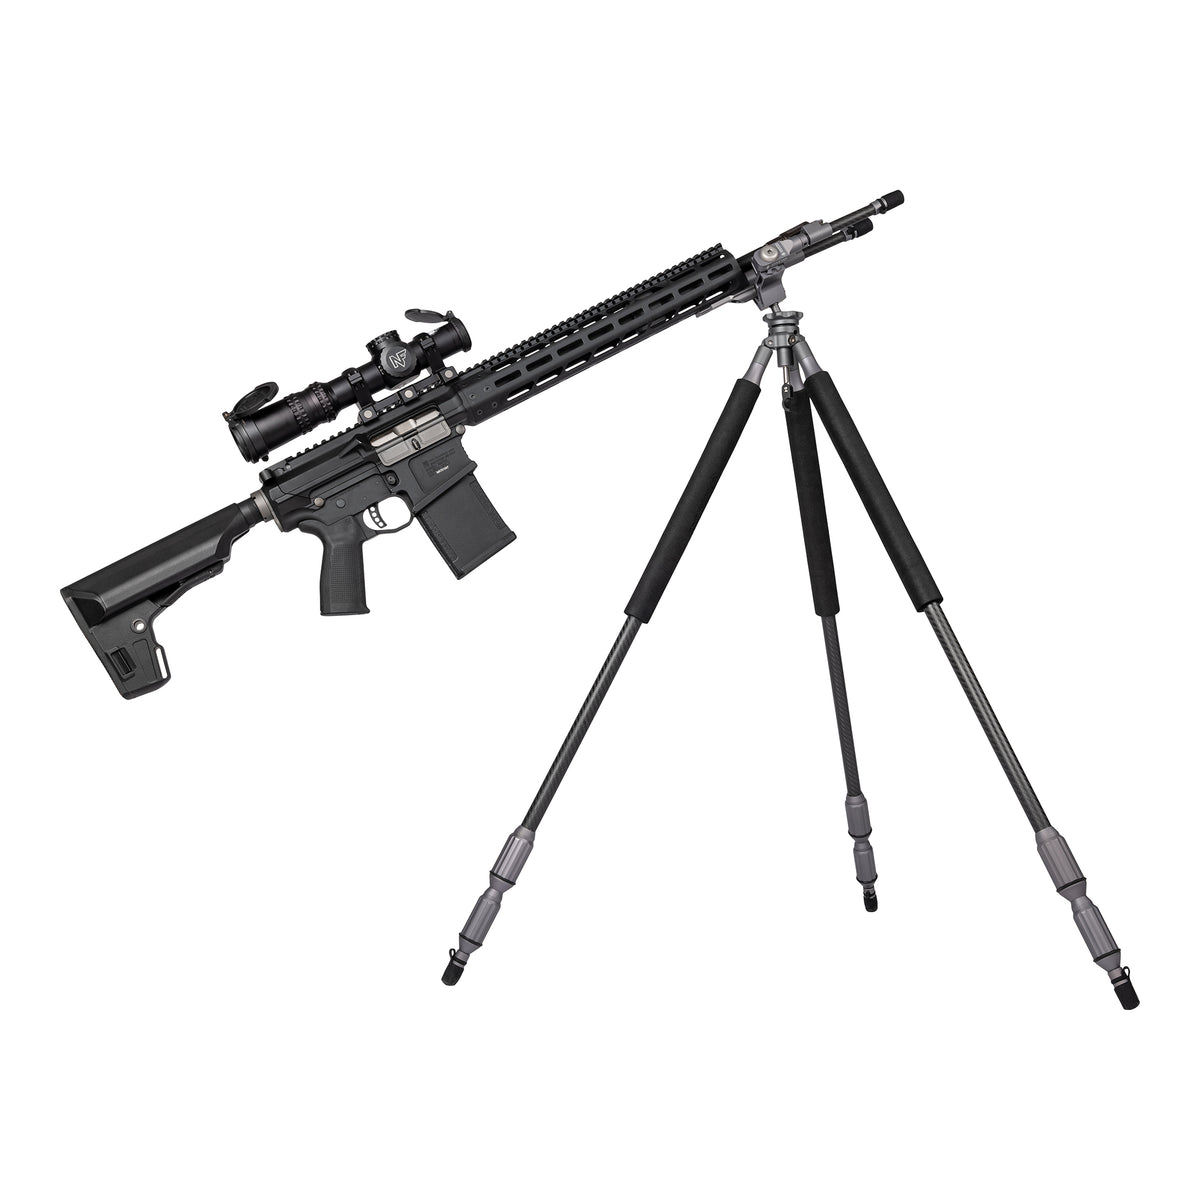 Valhalla Bipod - Coming Soon